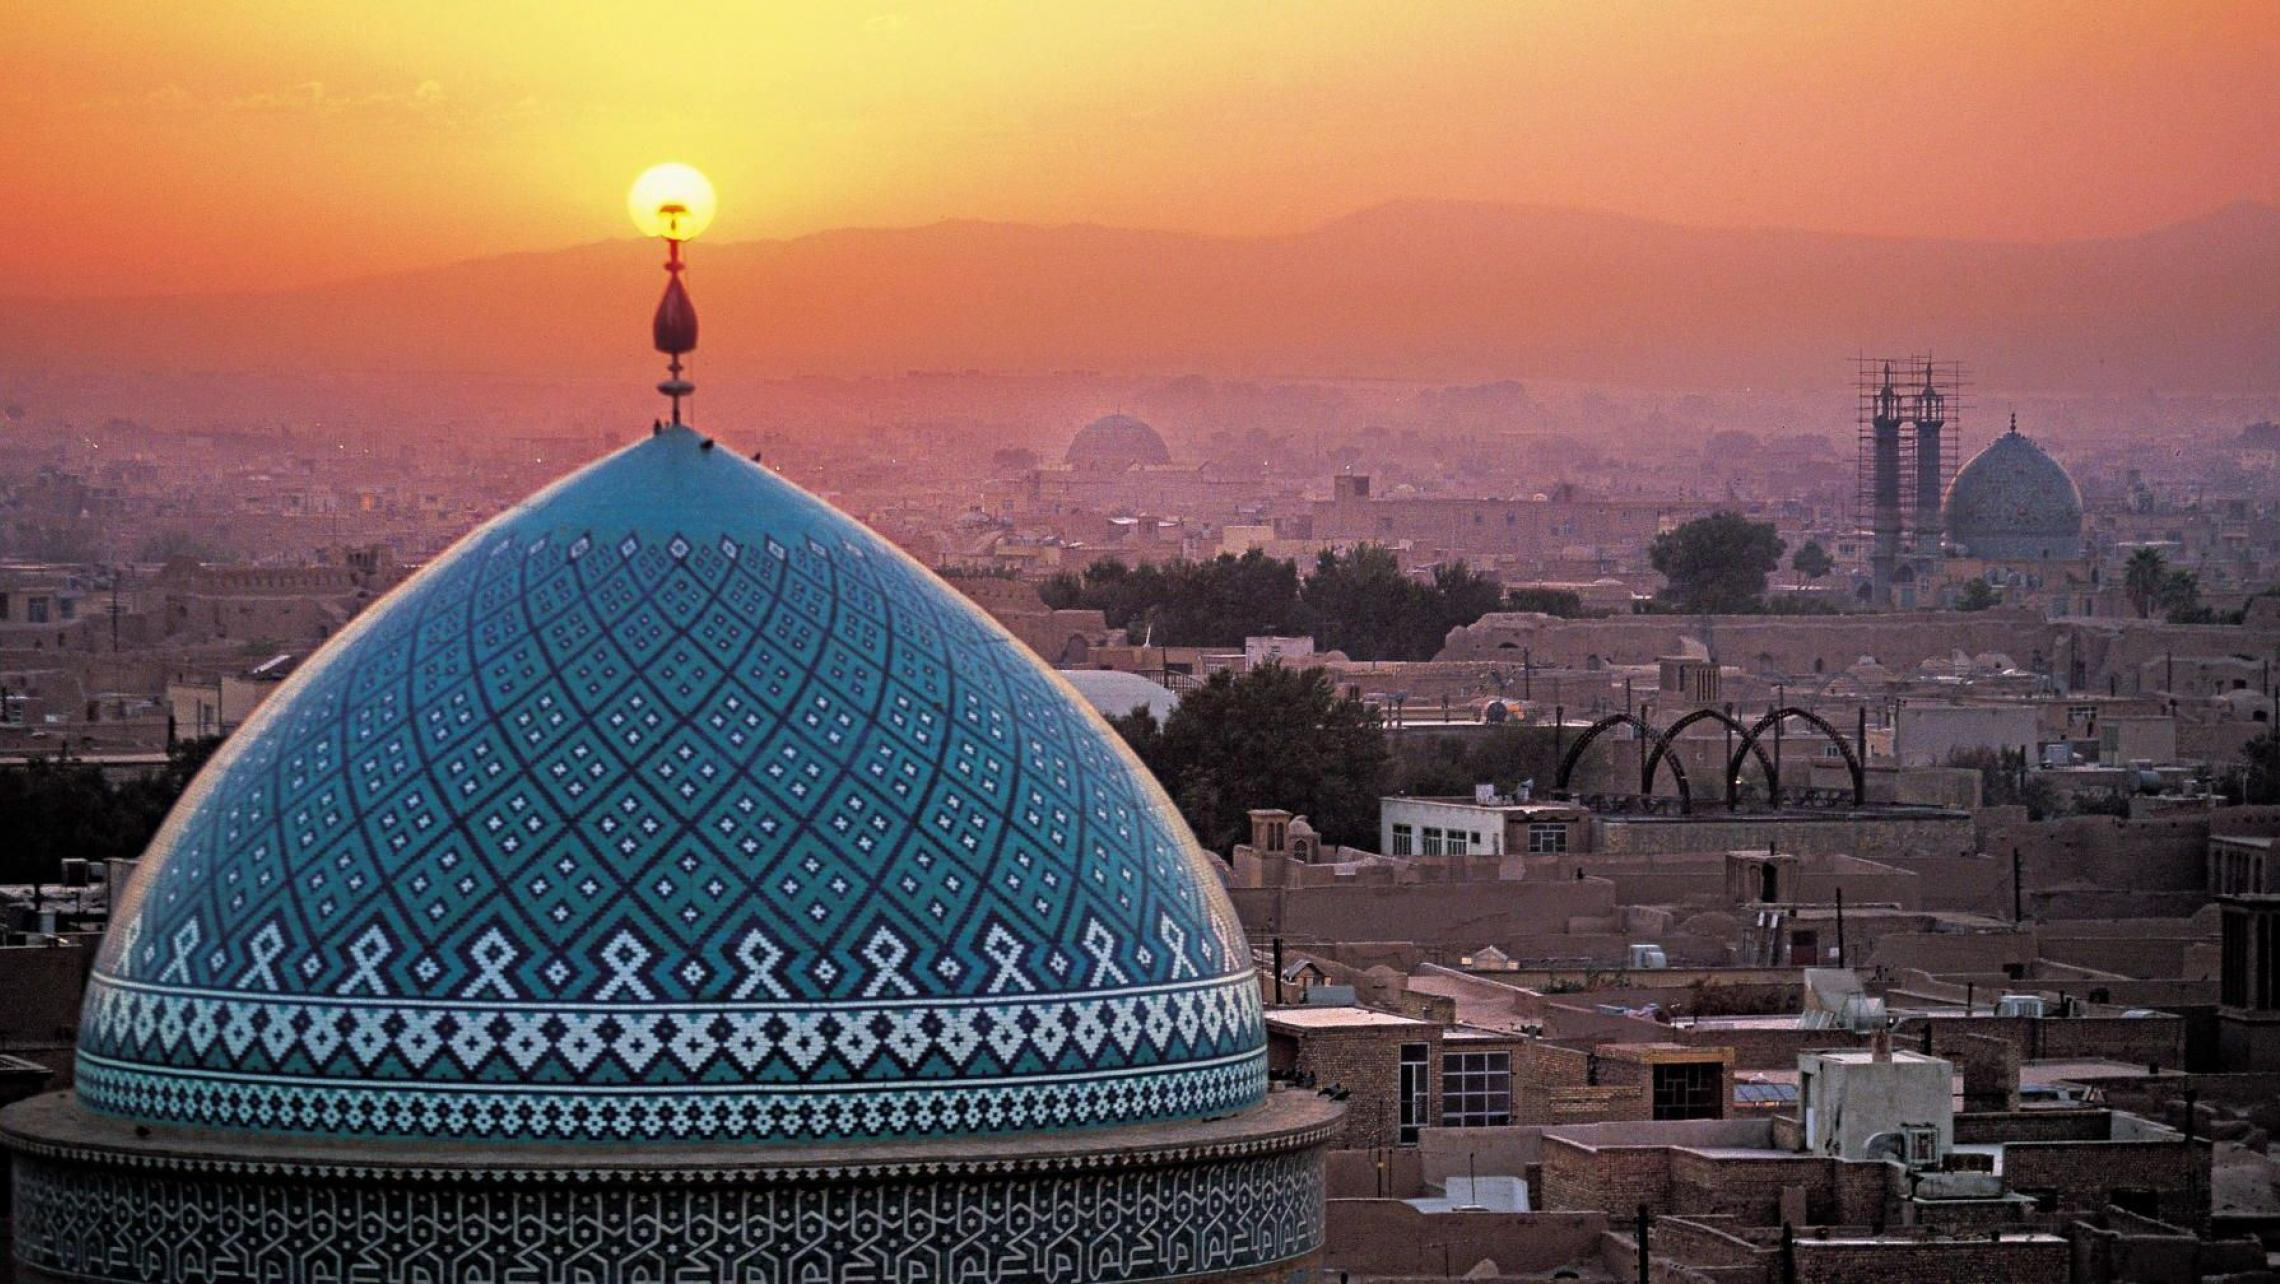 jame-mosque-aerial-view-sunset-yazd-iran